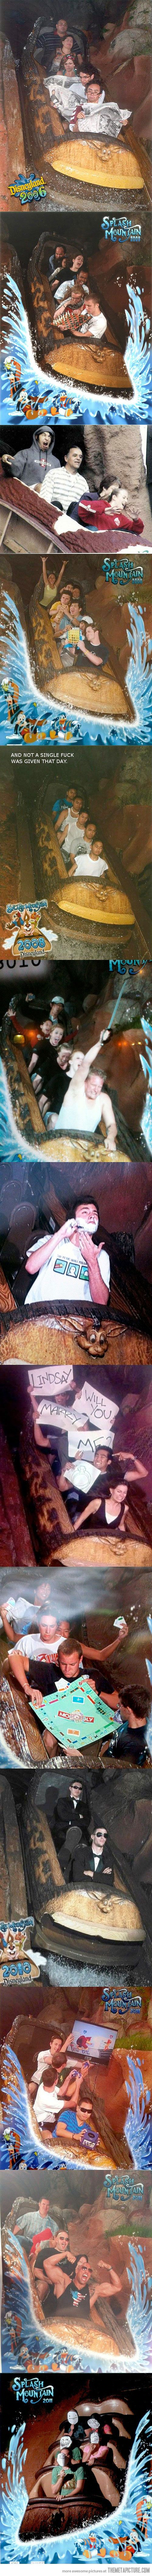 The best pictures of Disneyland's Splash Mountain. Creative and hilarious!